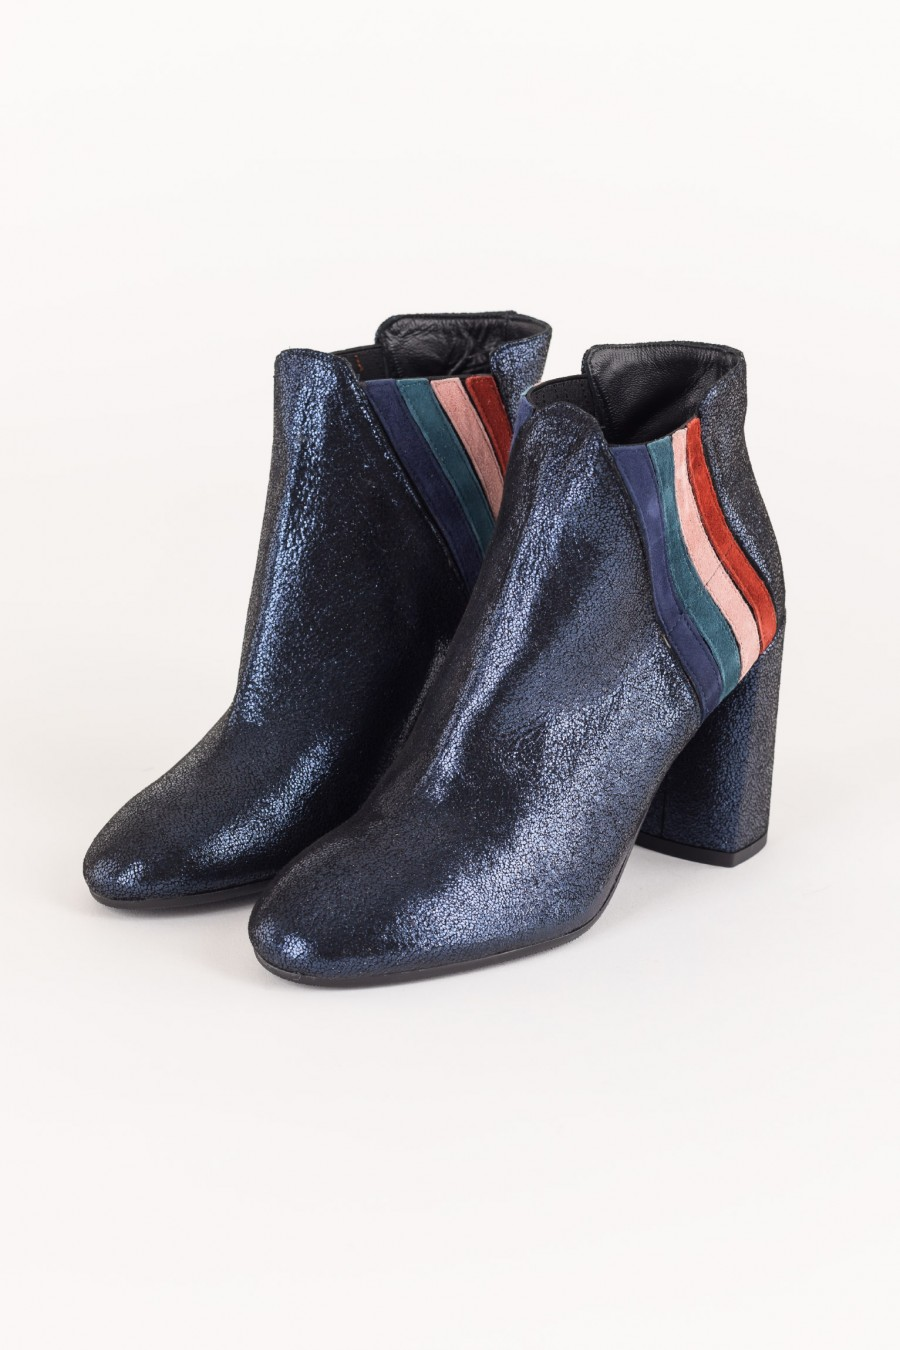 Rainbow ankle boots